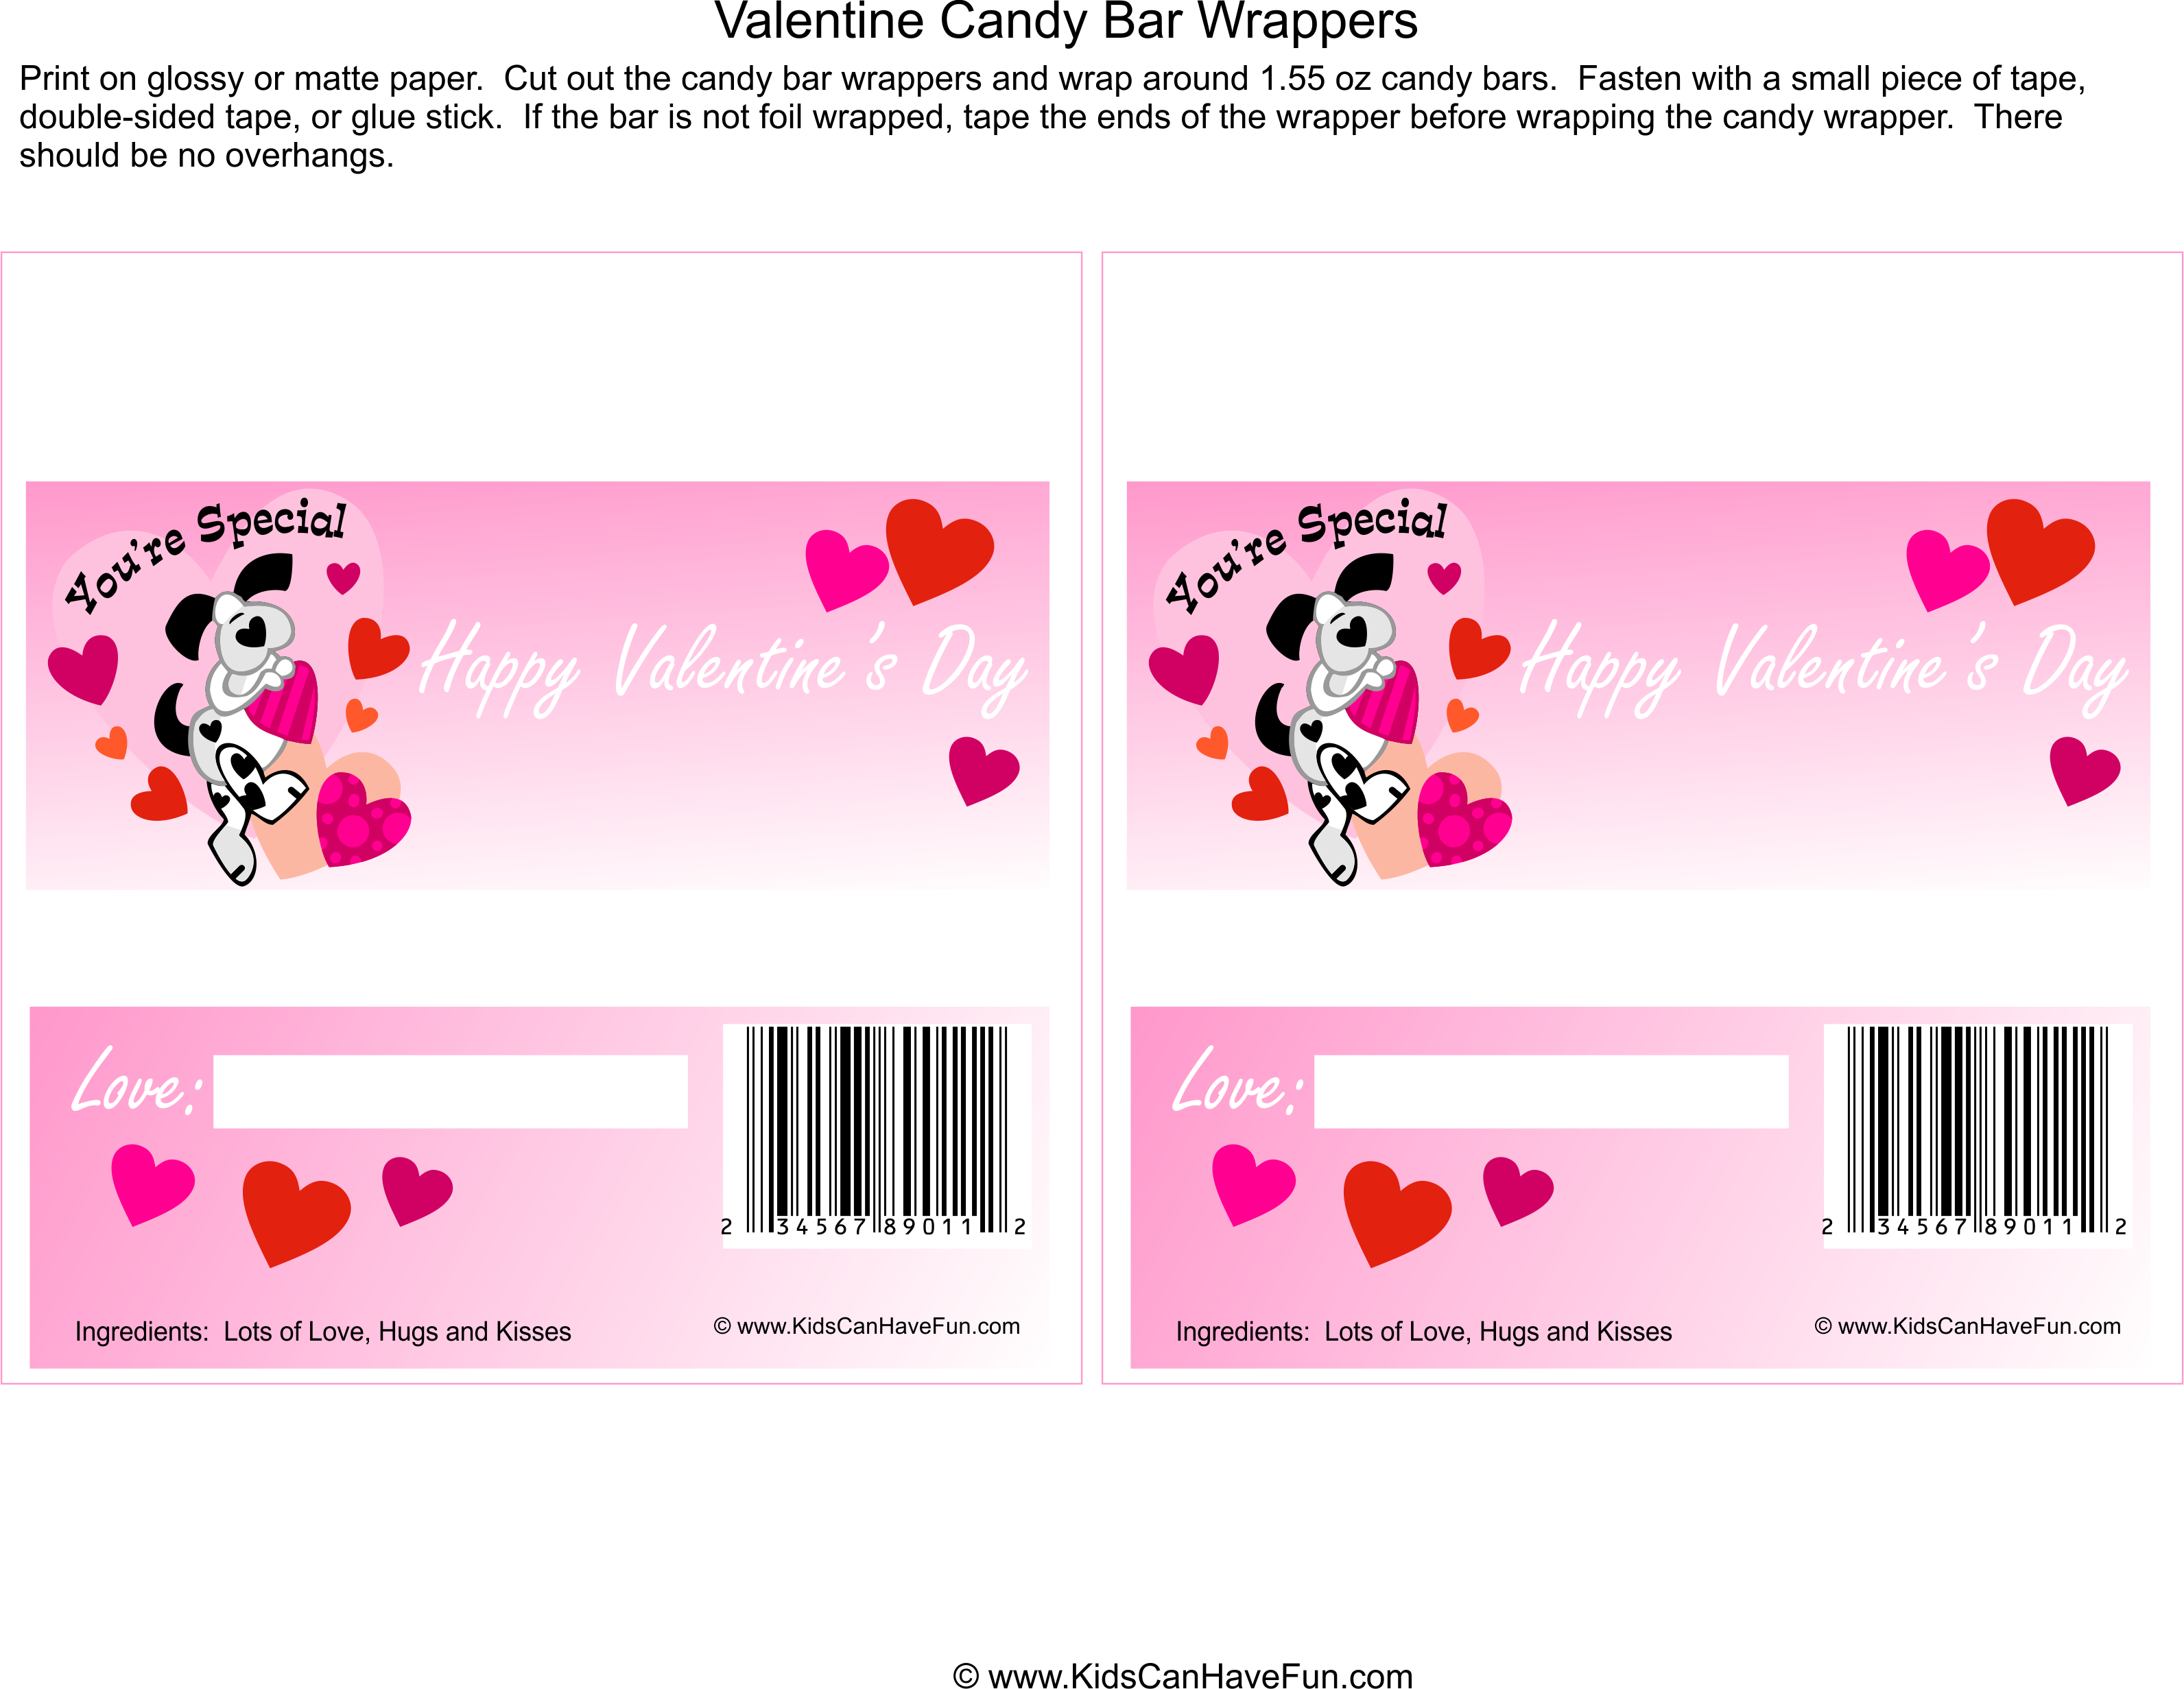 Free Candy Wrapper Template from www.pngkit.com